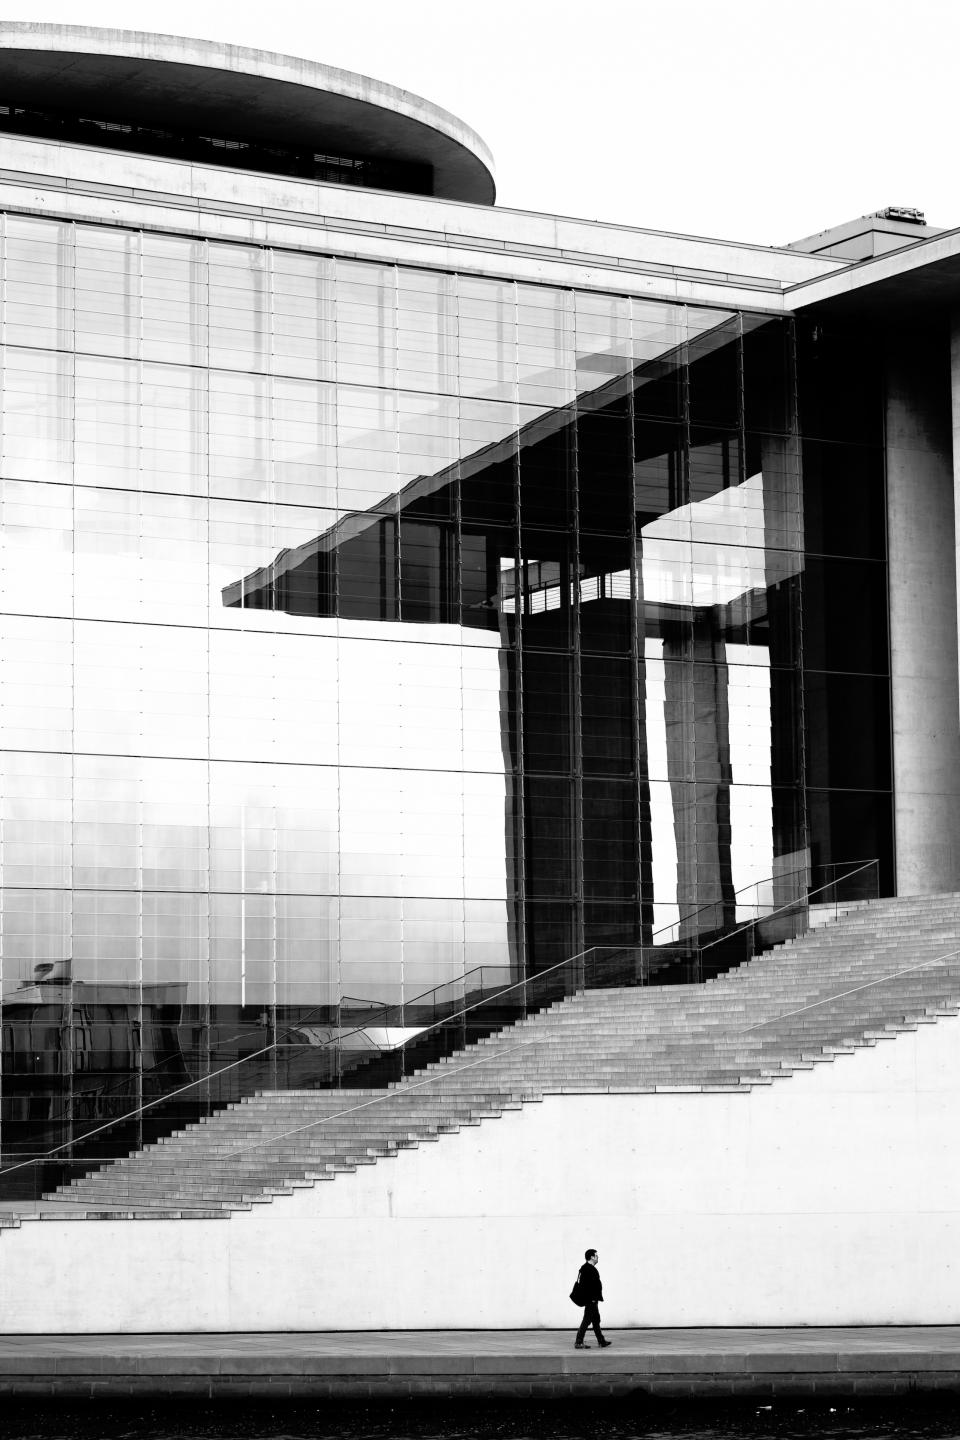 buildings structure architecture design stairs lines glass window people man guy walking black and white grayscale monochrome